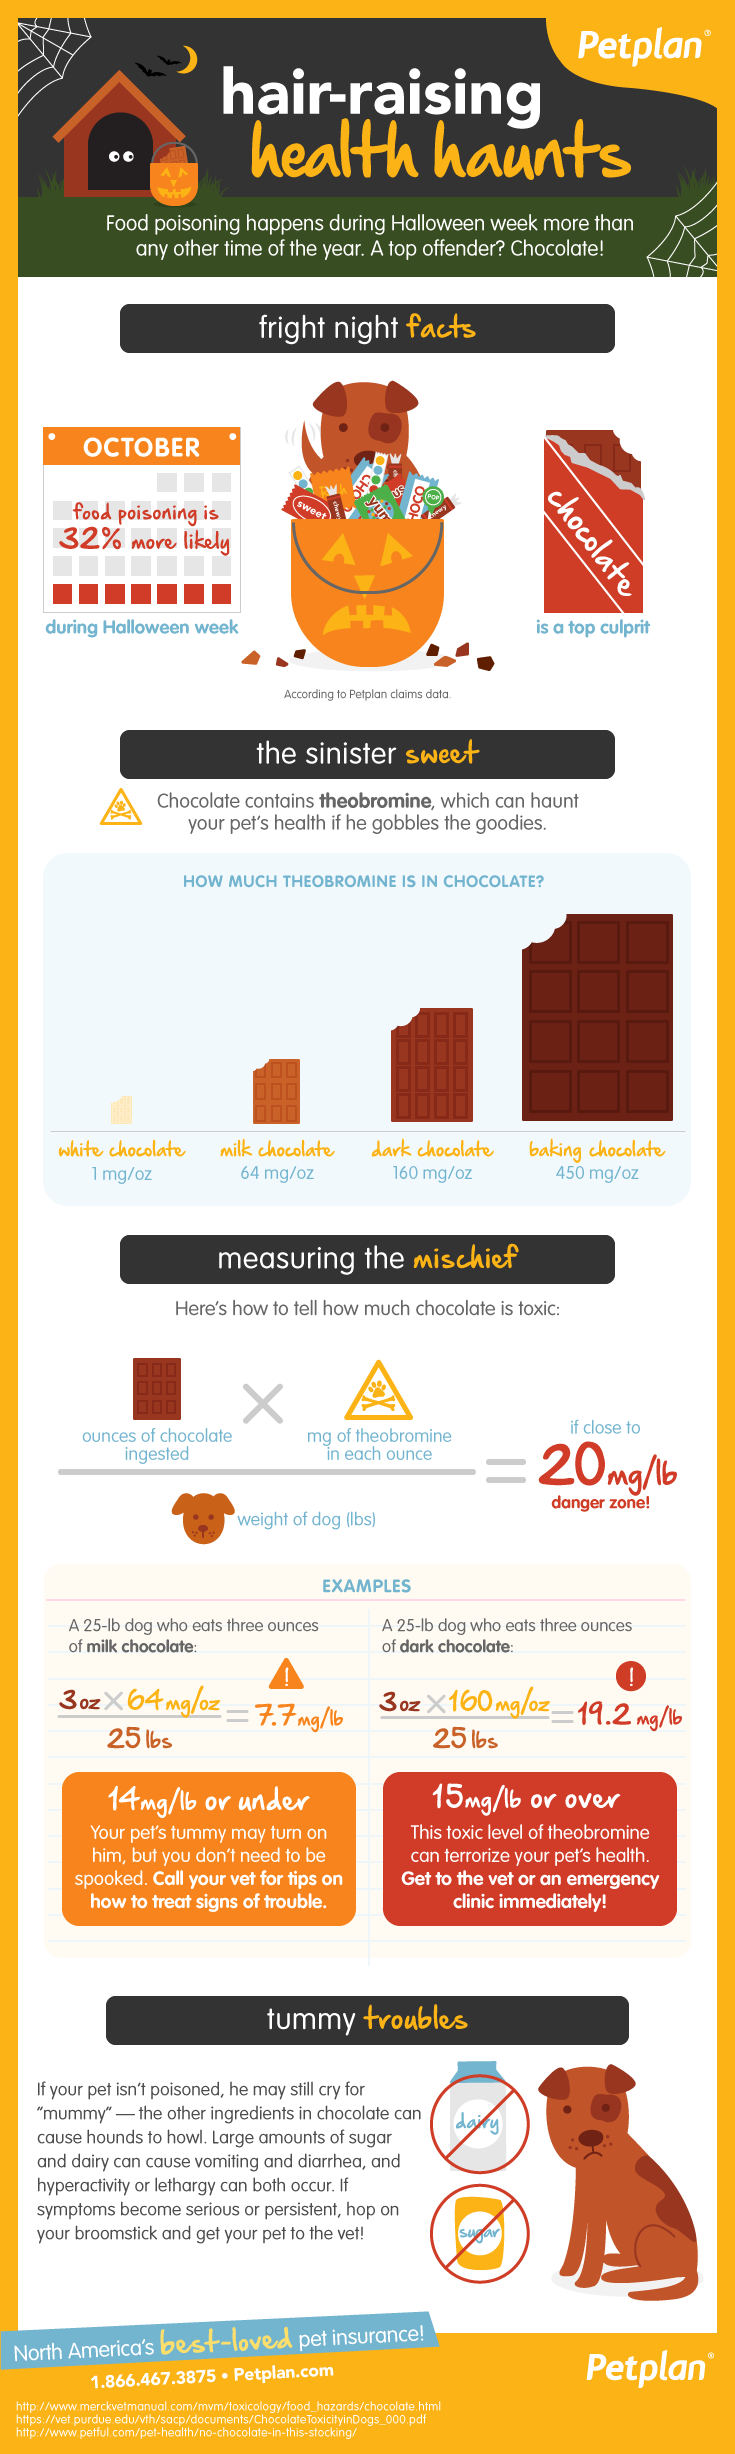 Petplan Chocolate Poisoning Halloween Infographic